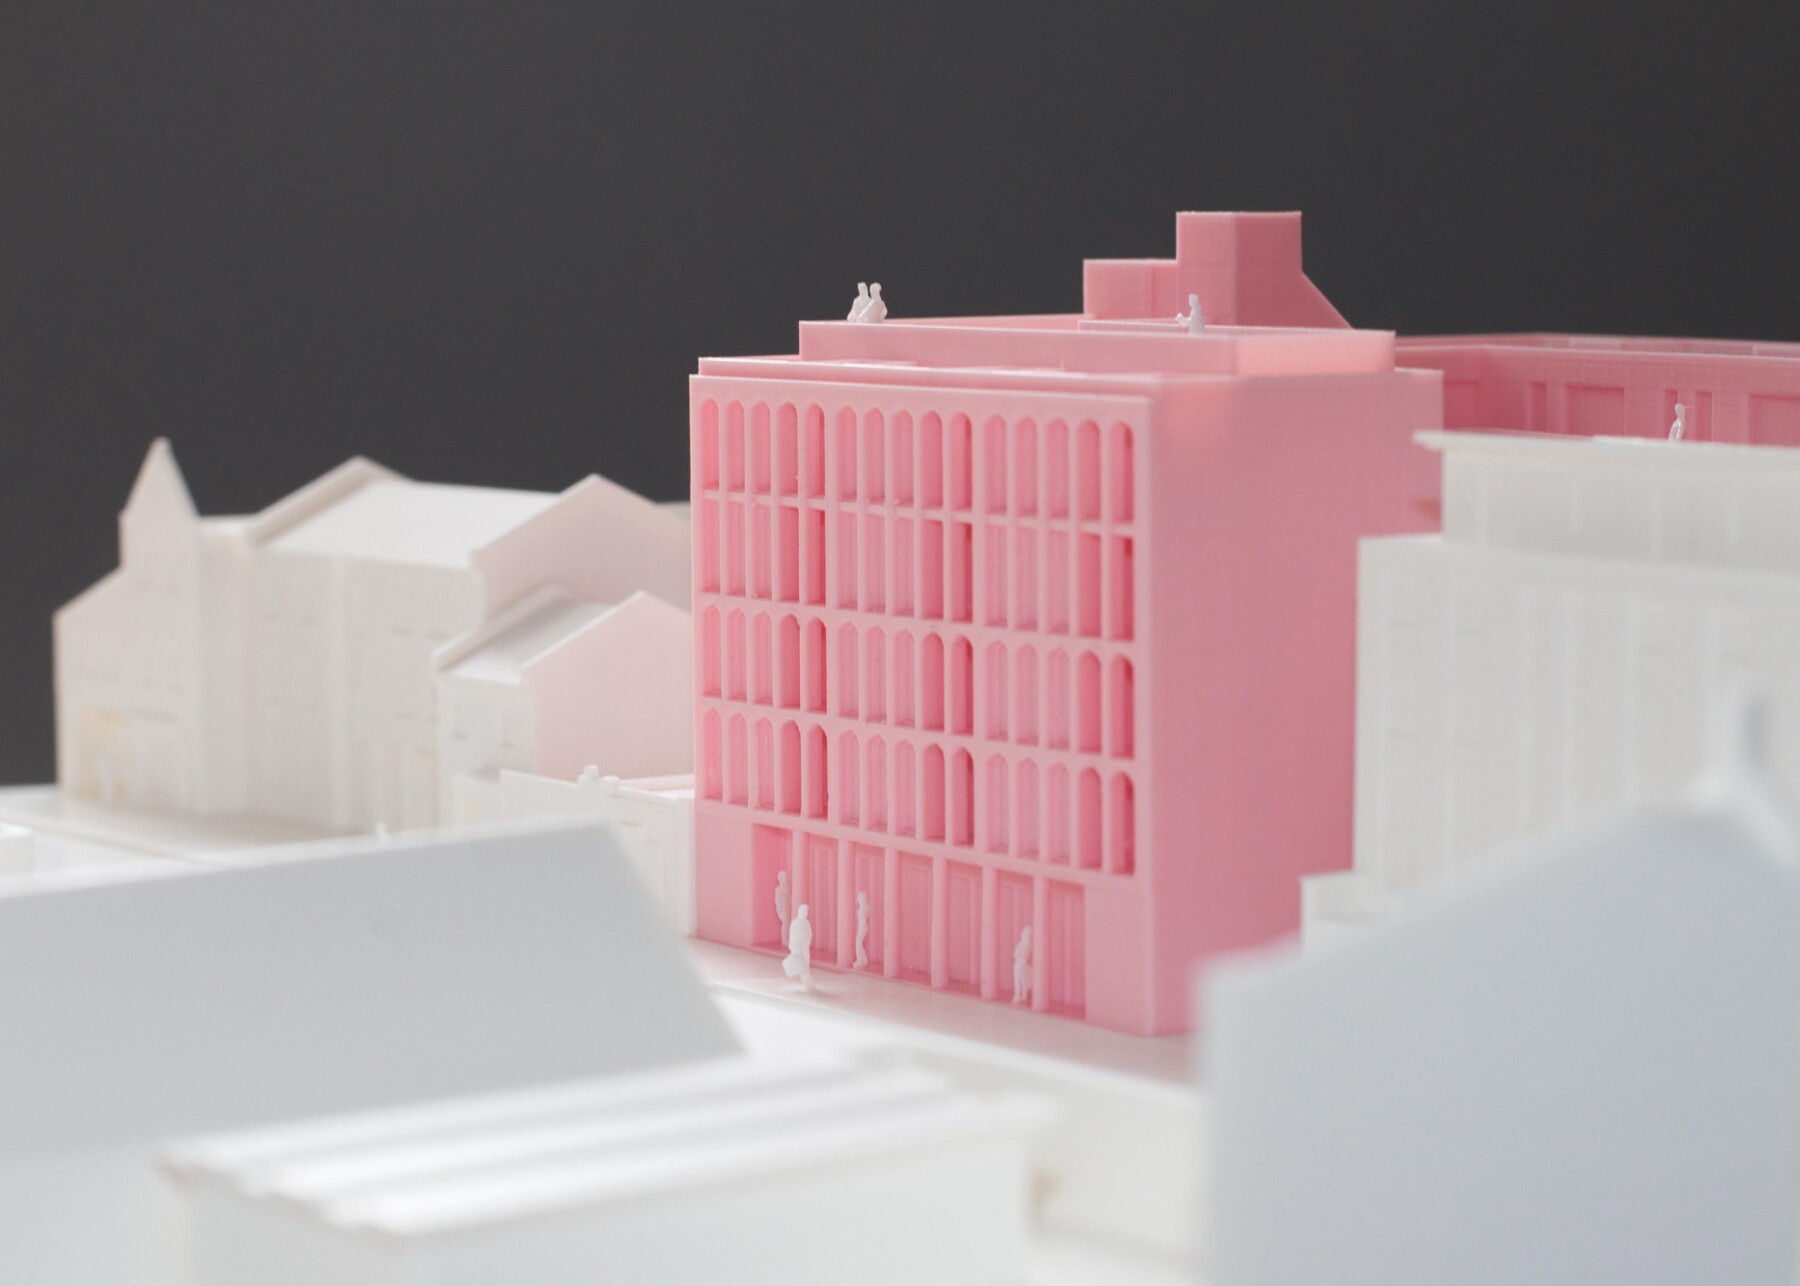 Wood Street, Walthamstow housing model by Architecture for London